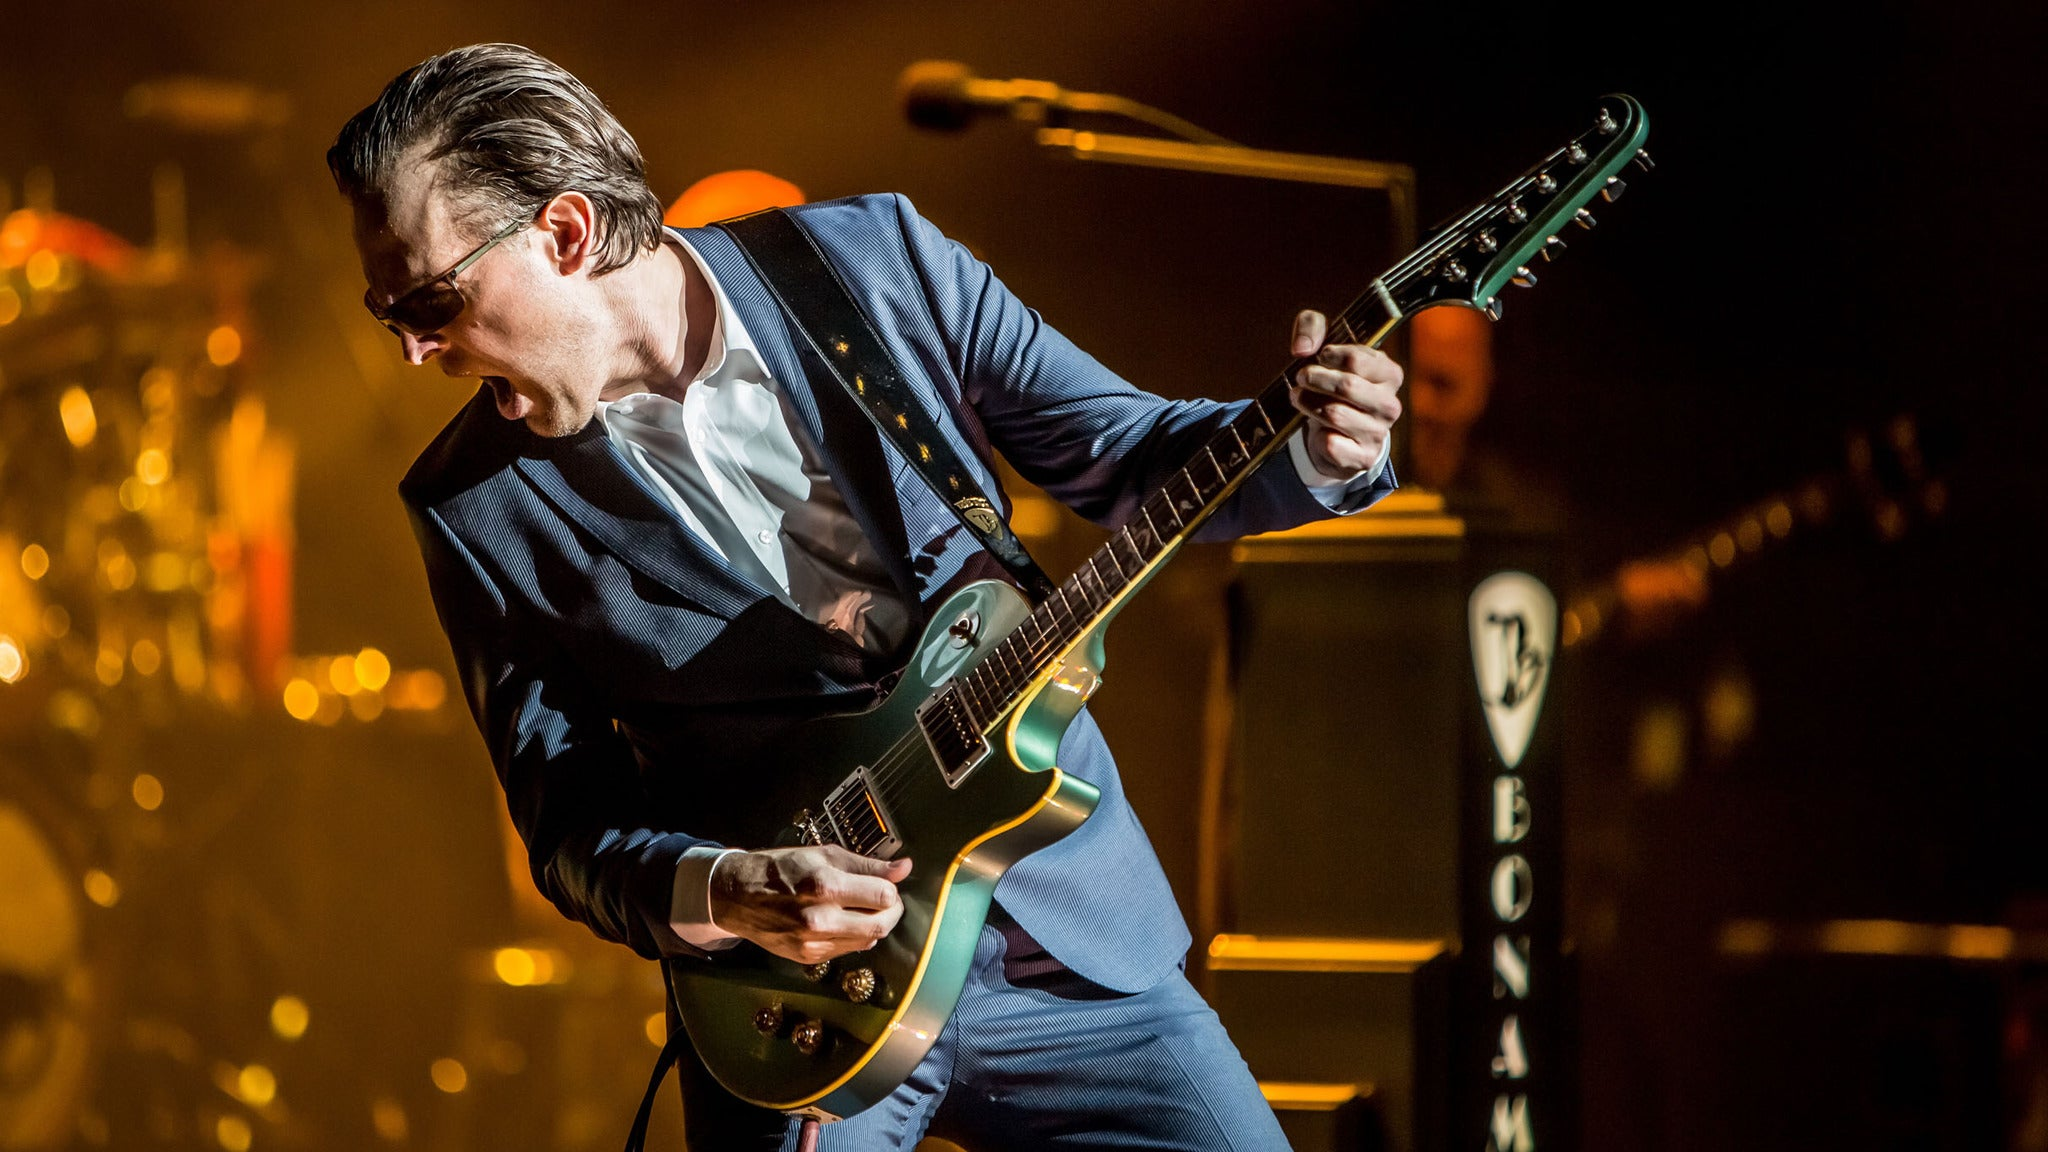 Joe Bonamassa at Soldiers and Sailors Memorial Auditorium